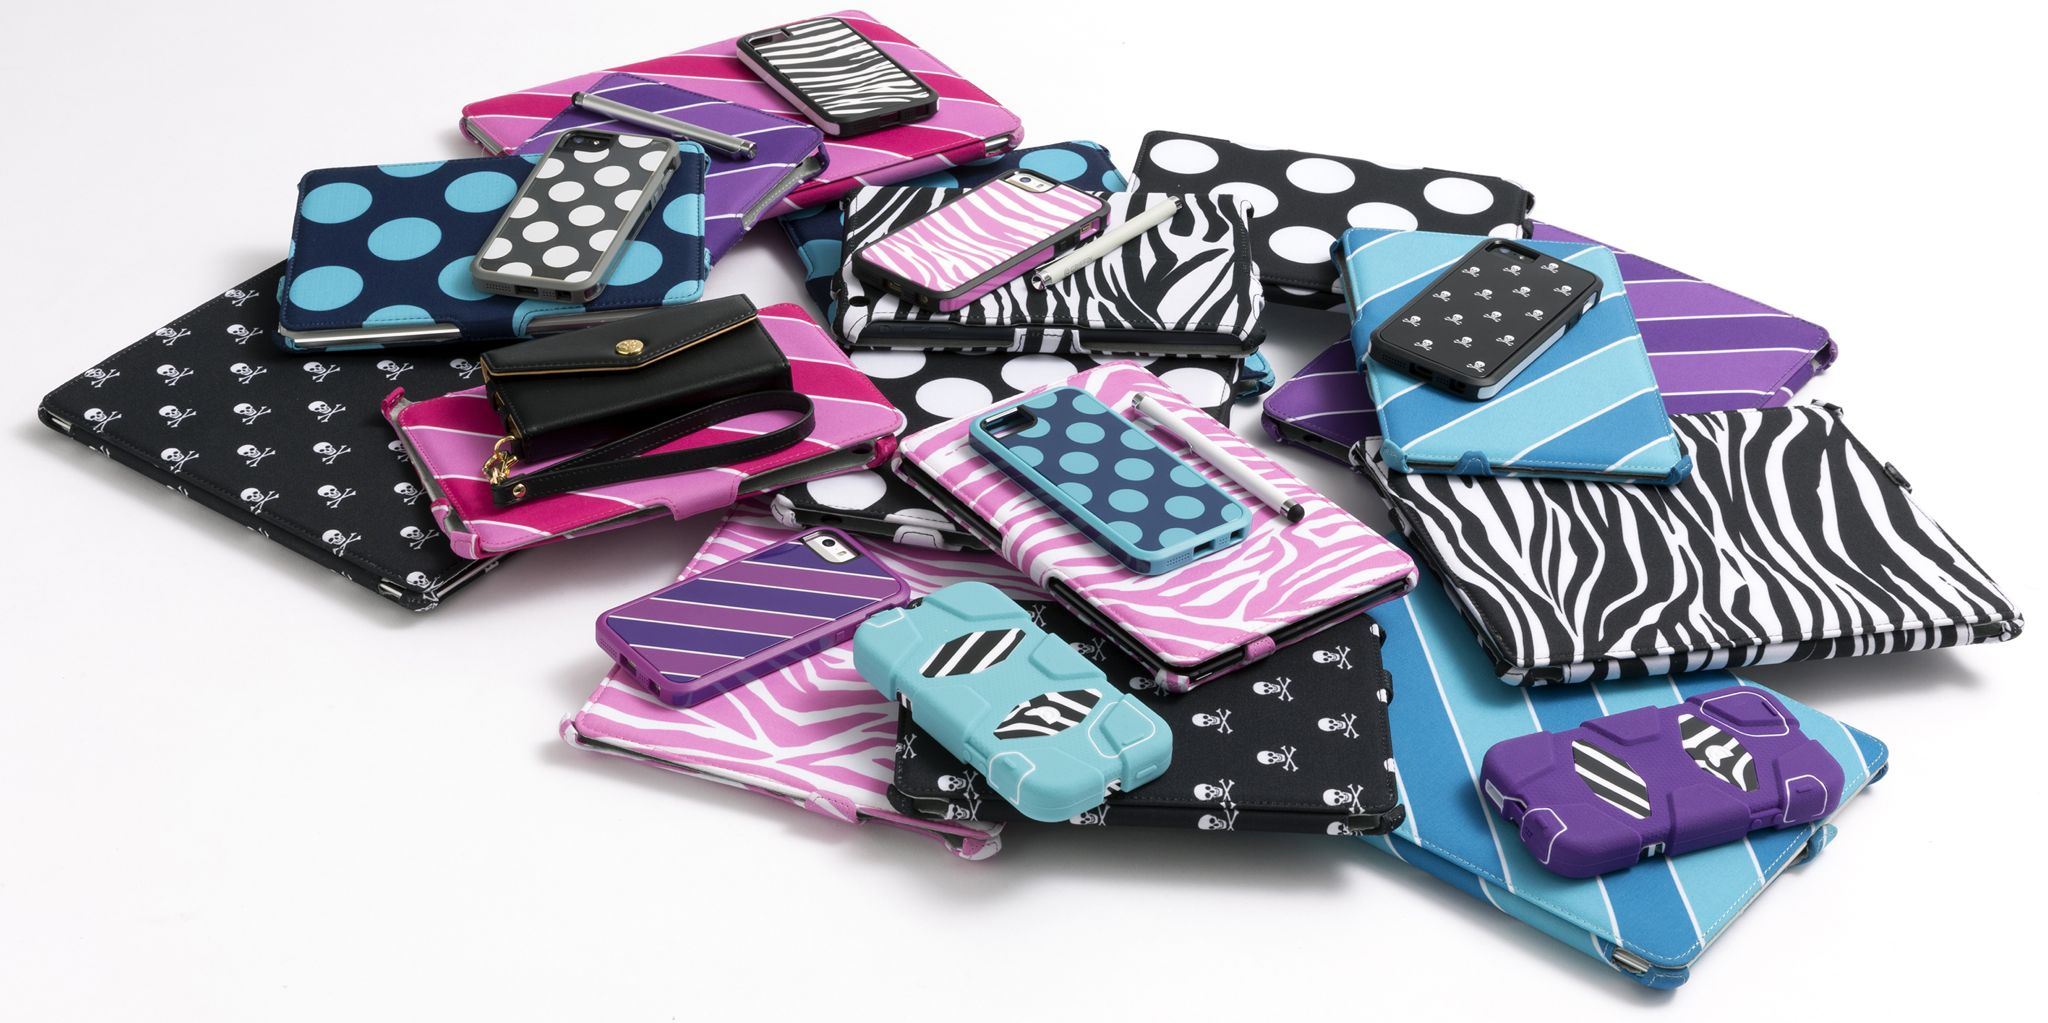 Griffin Spring 2014 case lineup (image 001)